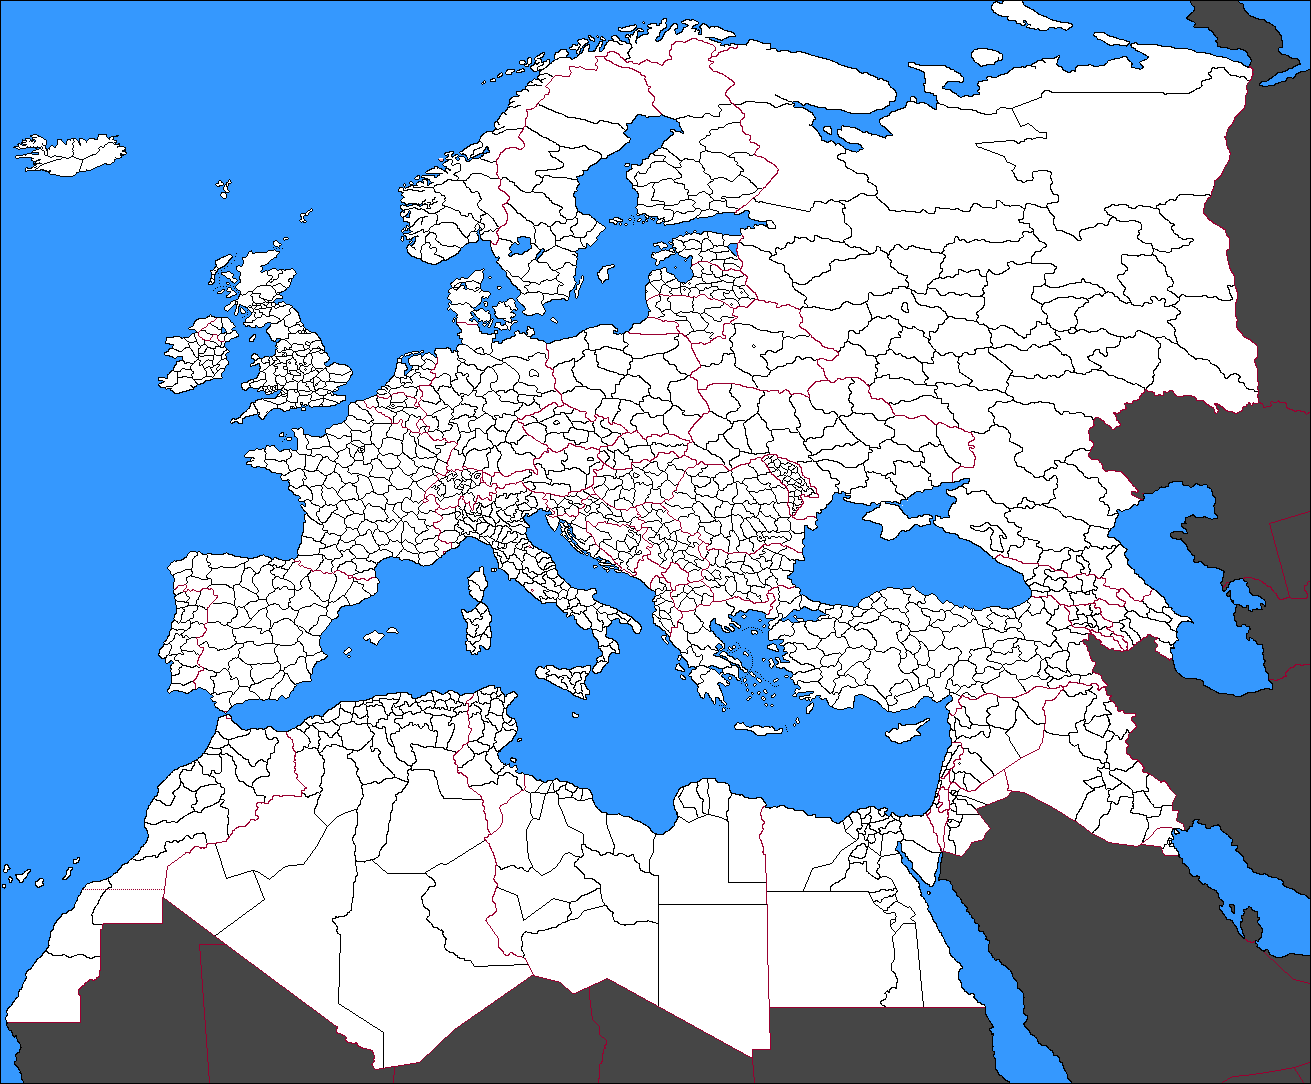 25 Awesome Europe Country Map on united states game, europe map labeling game, blank africa map game, blank europe map 1815, blank numbered europe map, blank us map game, blank renaissance europe map, blank europe map 1919, map of usa capitals game, blank map or europe, blank outline map europe wwii,